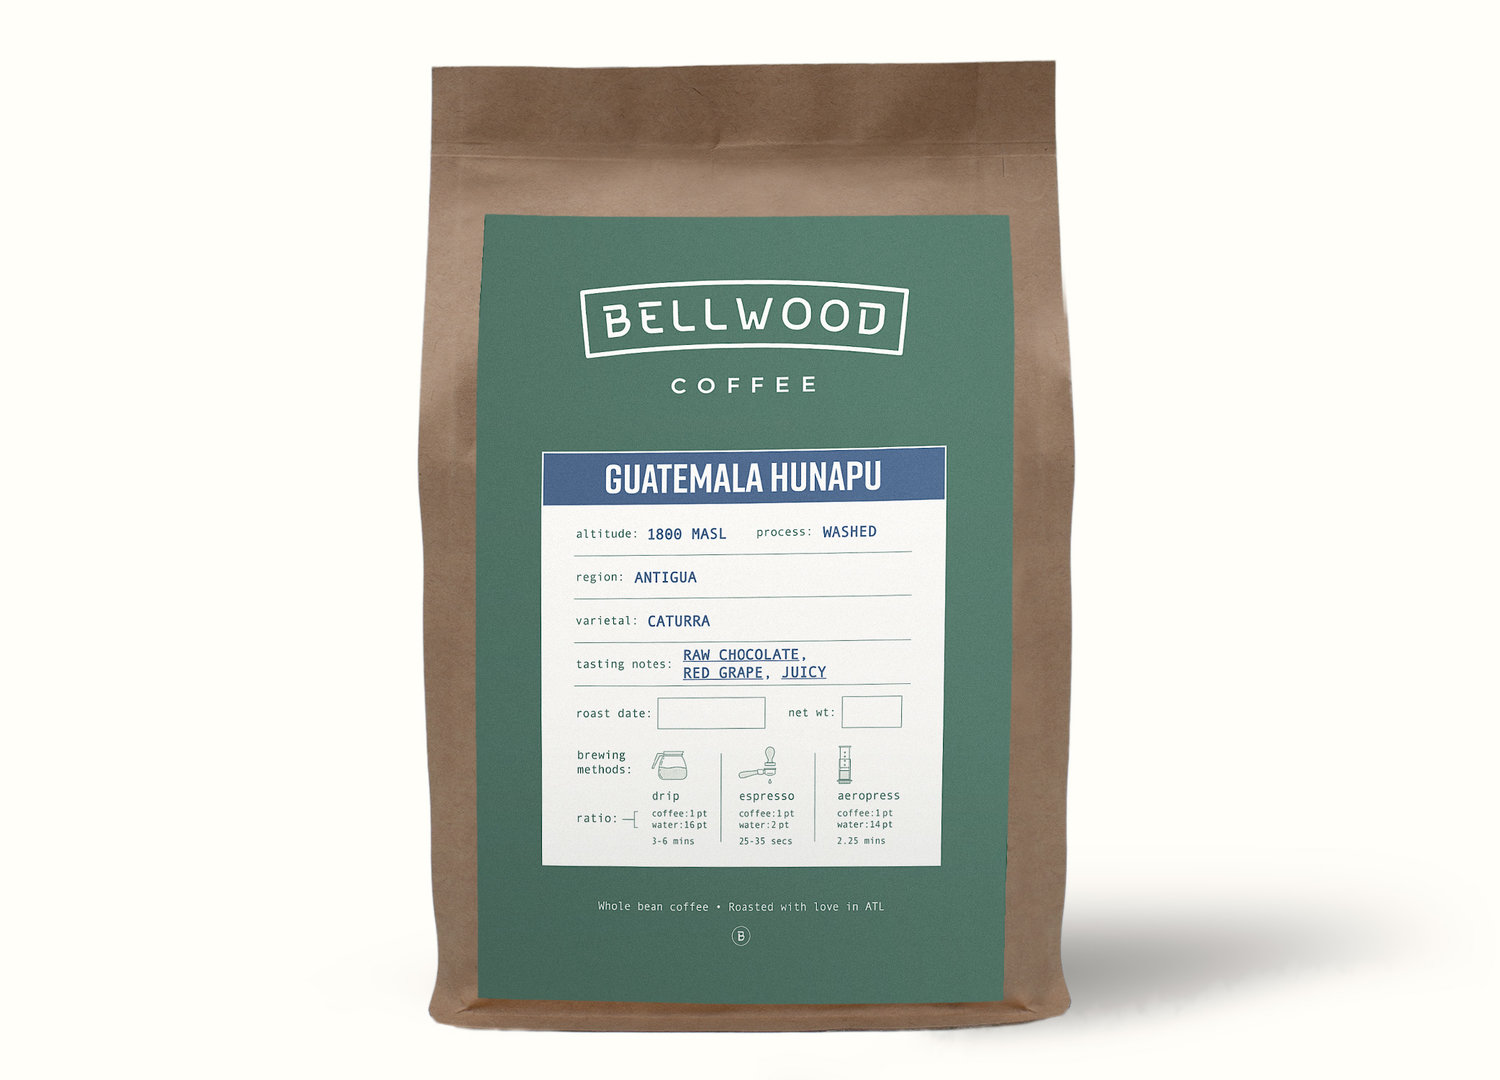 Single Origin - We'll send you one of our Single Origin Coffees on rotation so you can get a taste of what we're dishing up at Bellwood.